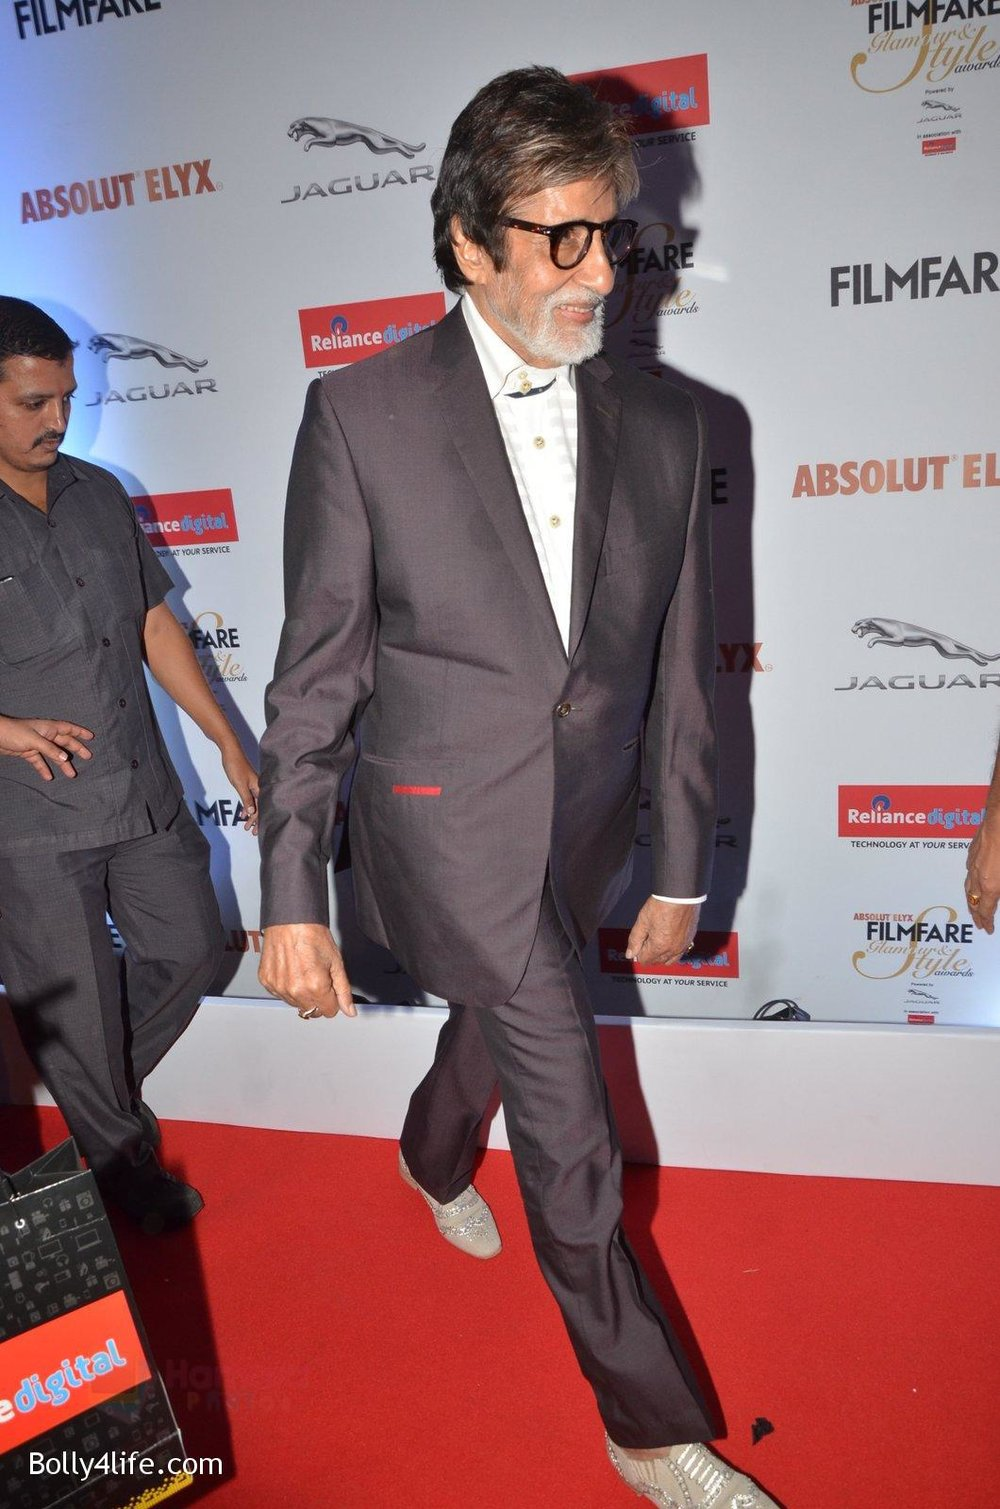 Amitabh-Bachchan-at-Filmfare-Glamour-Style-Awards-2016-in-Mumbai-on-15th-Oct-2016-2176.jpg